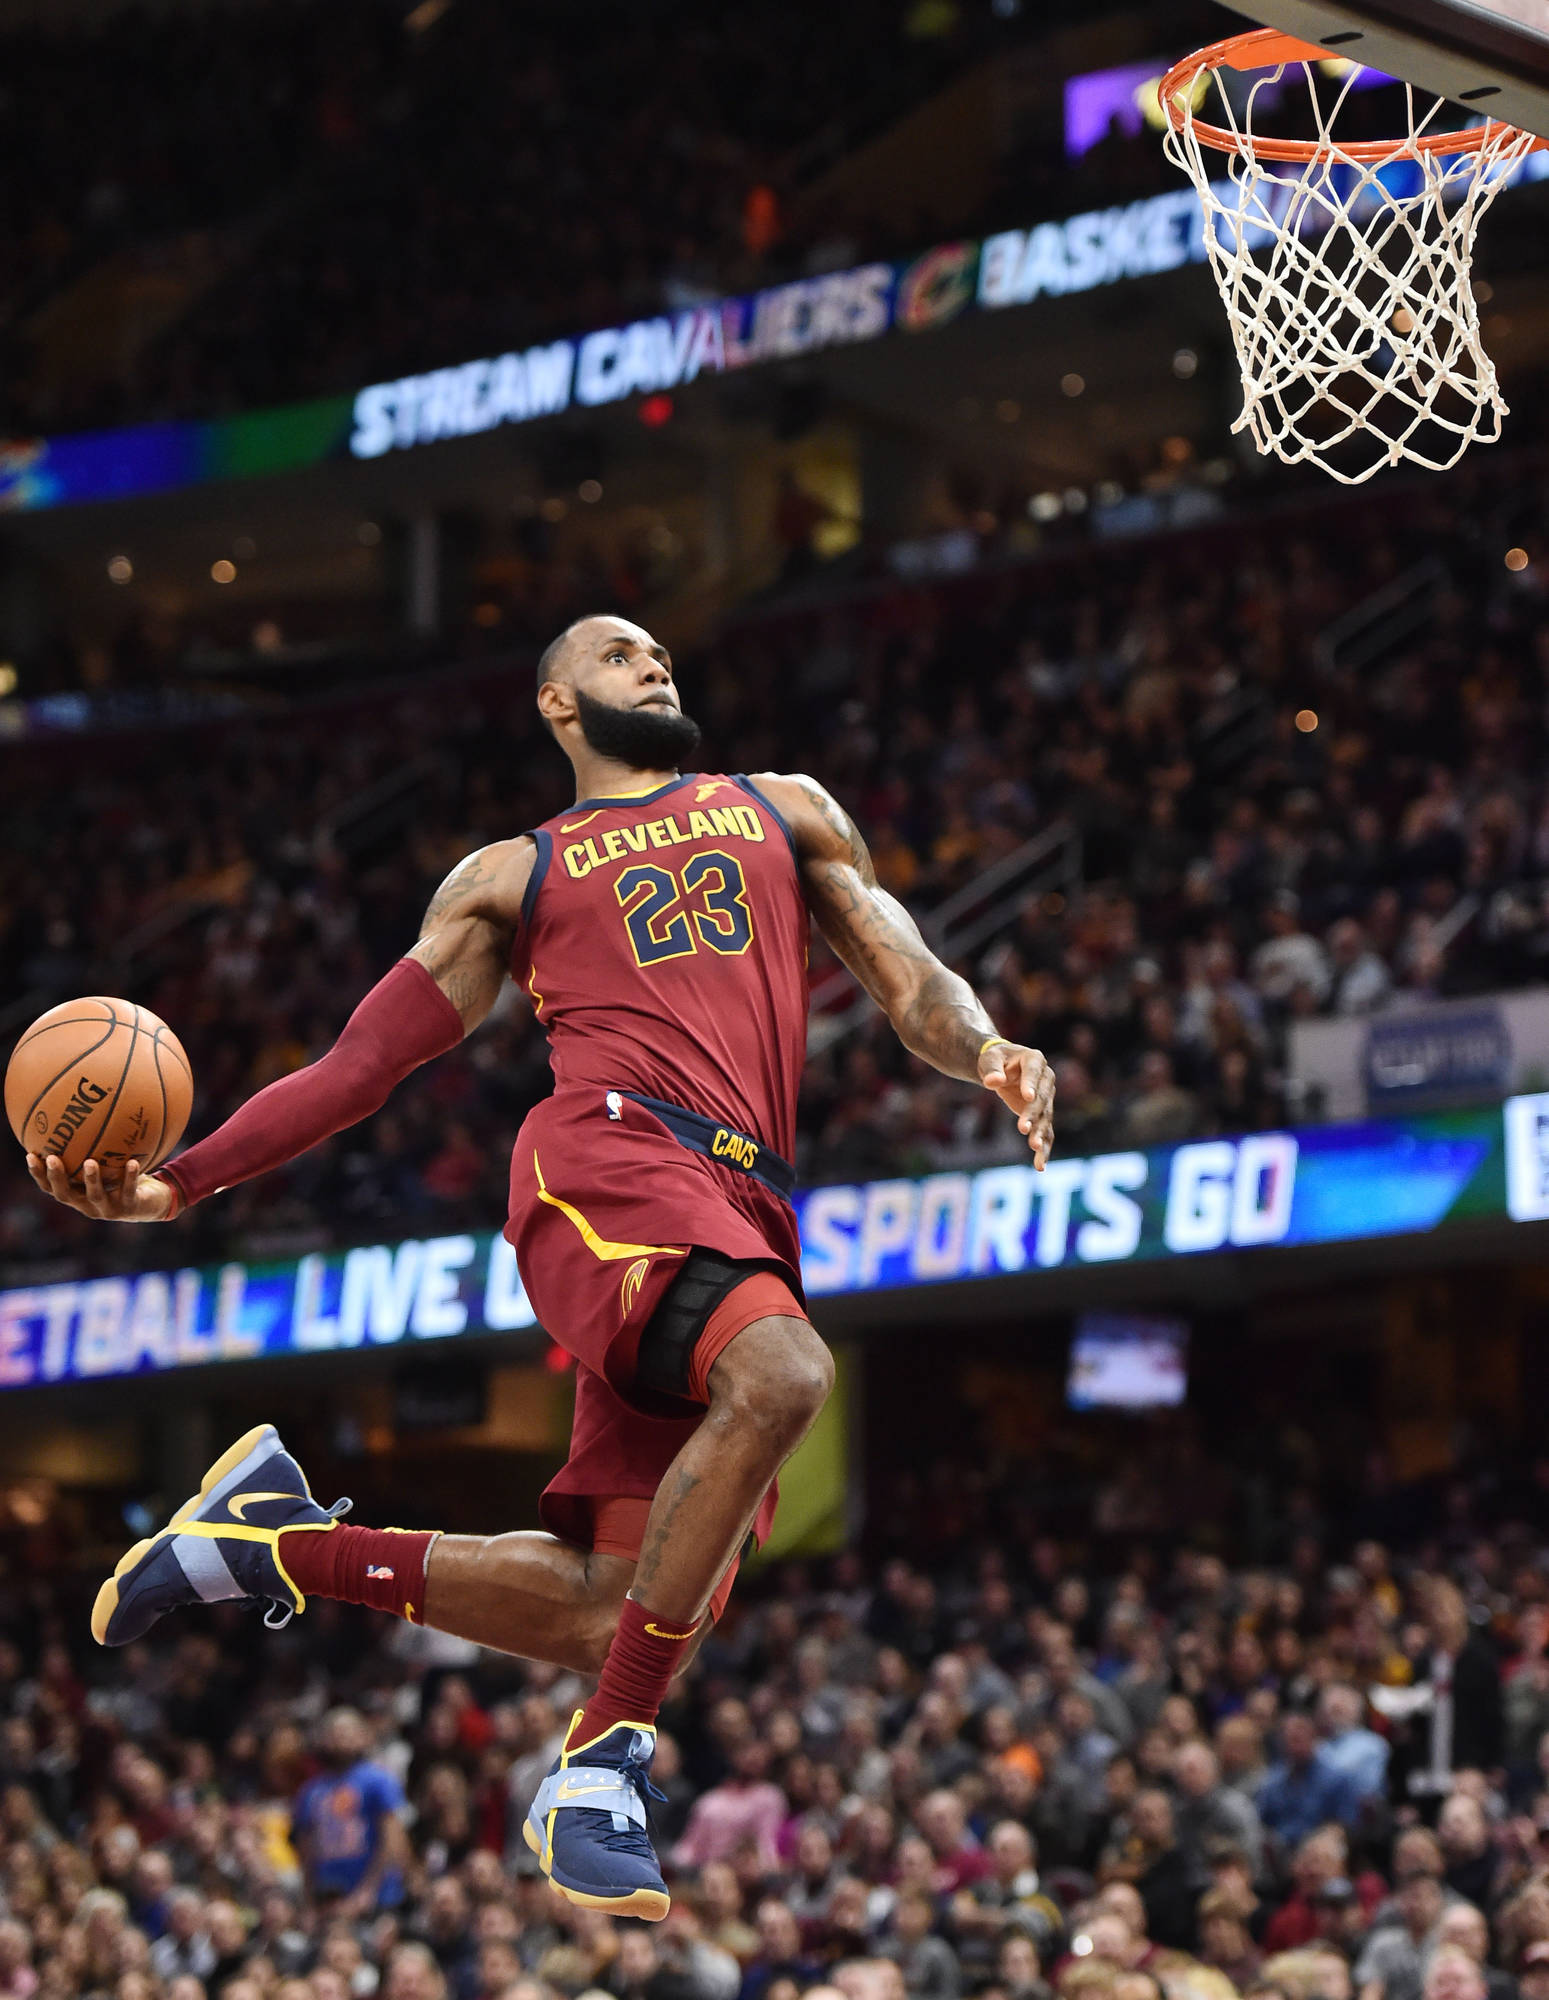 WATCH: LeBron James misses wide-open windmill dunk | Yardbarker.com